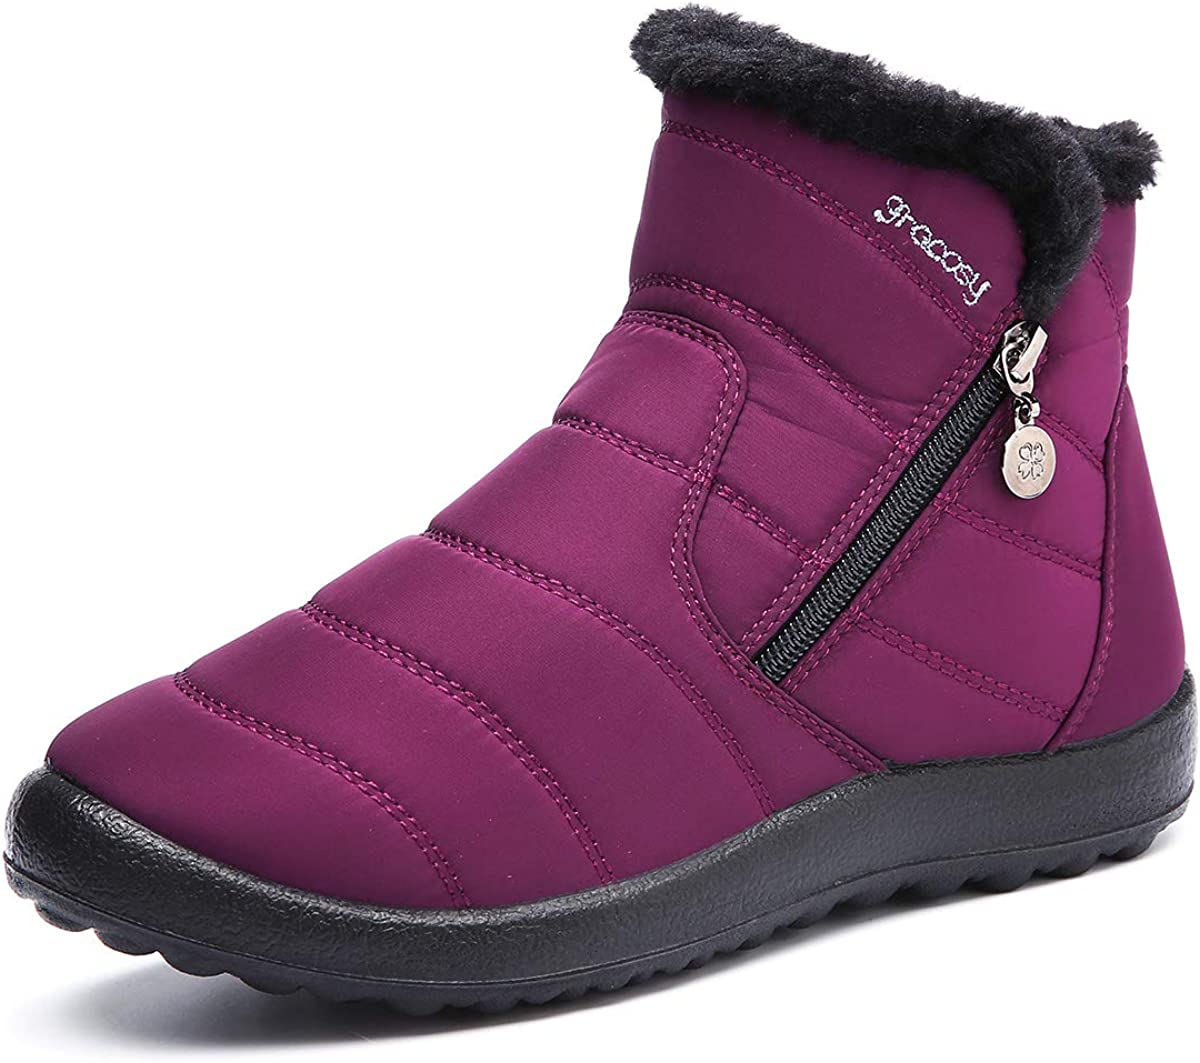 gracosy Complete Free Shipping Warm Snow Japan's largest assortment Boots Women's F Ankle Winter Anti-Slip Bootie